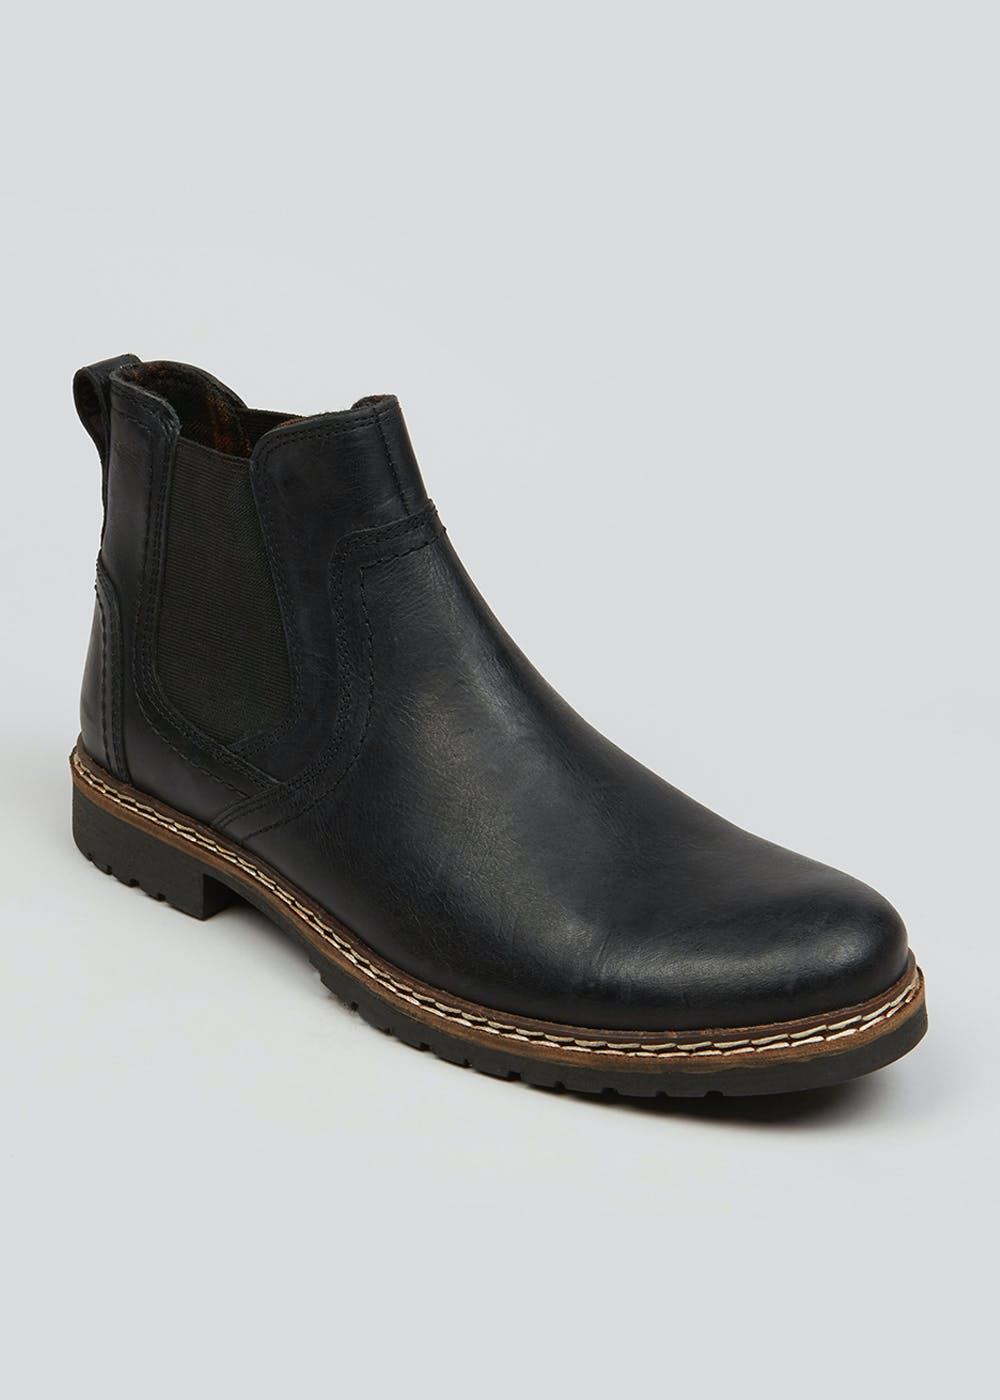 Black Leather Chelsea Boots by Matalan